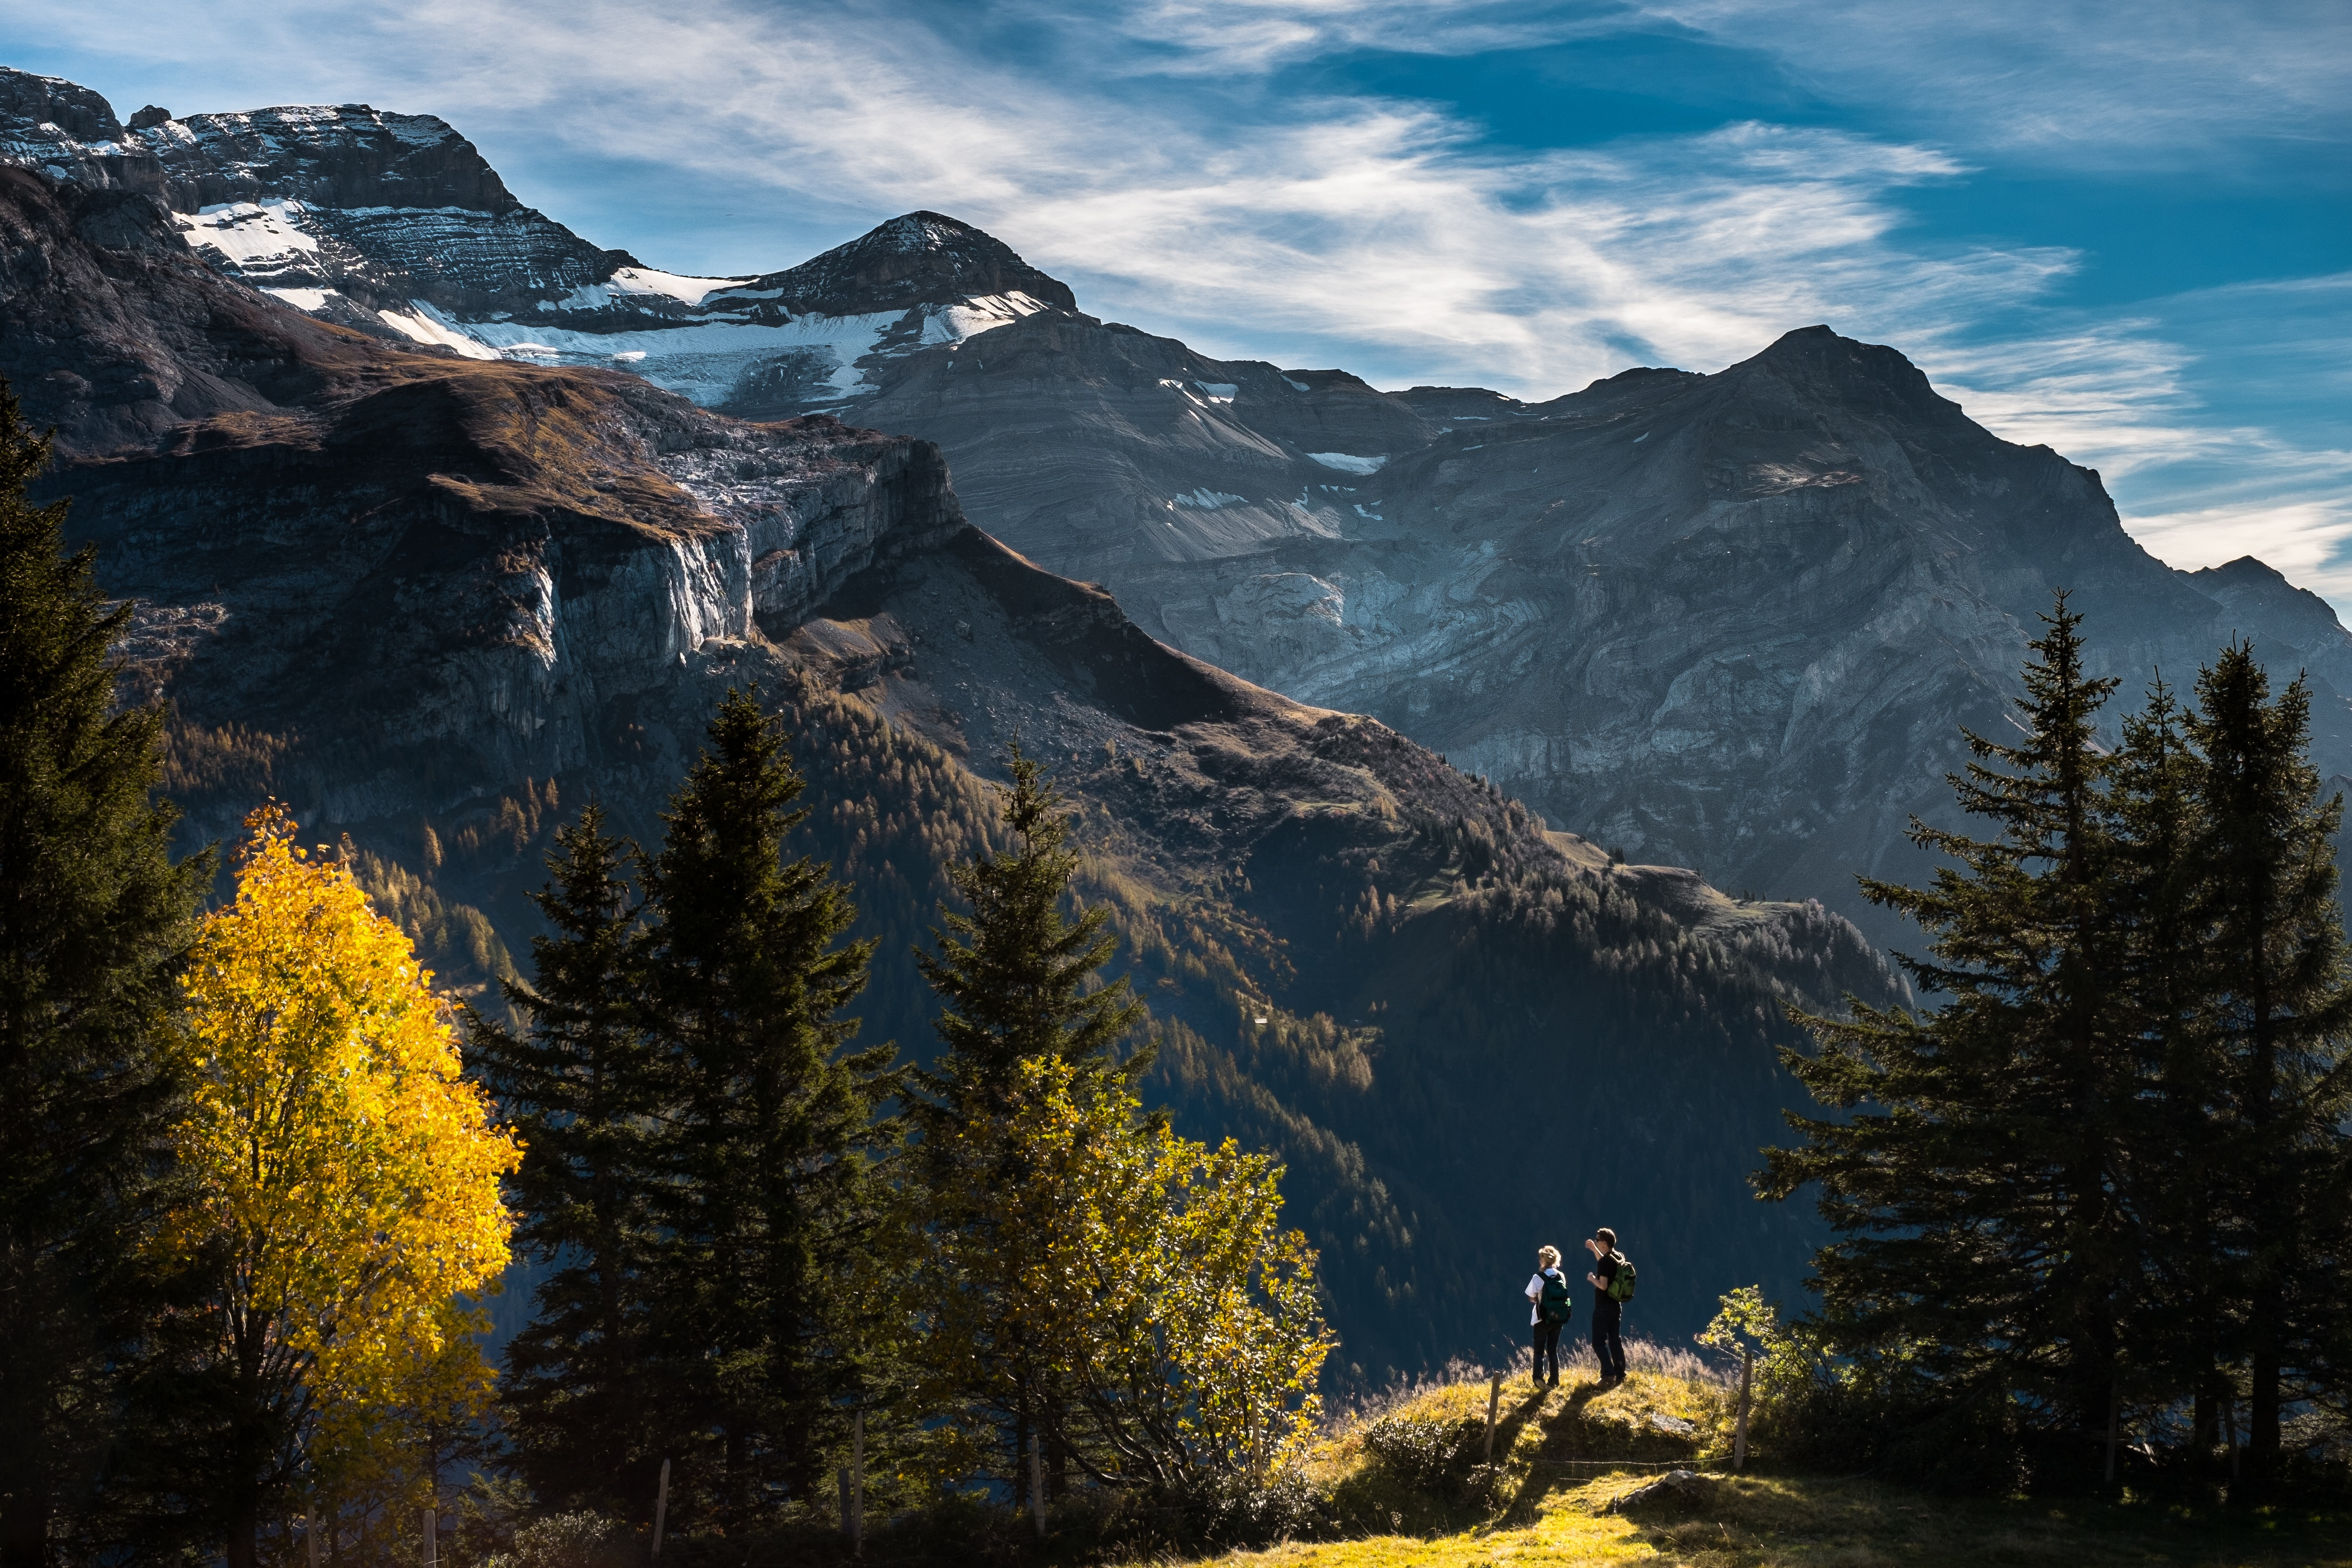 Panoramic outddoor view of an adventurous and enormous mountain dowsed in nature